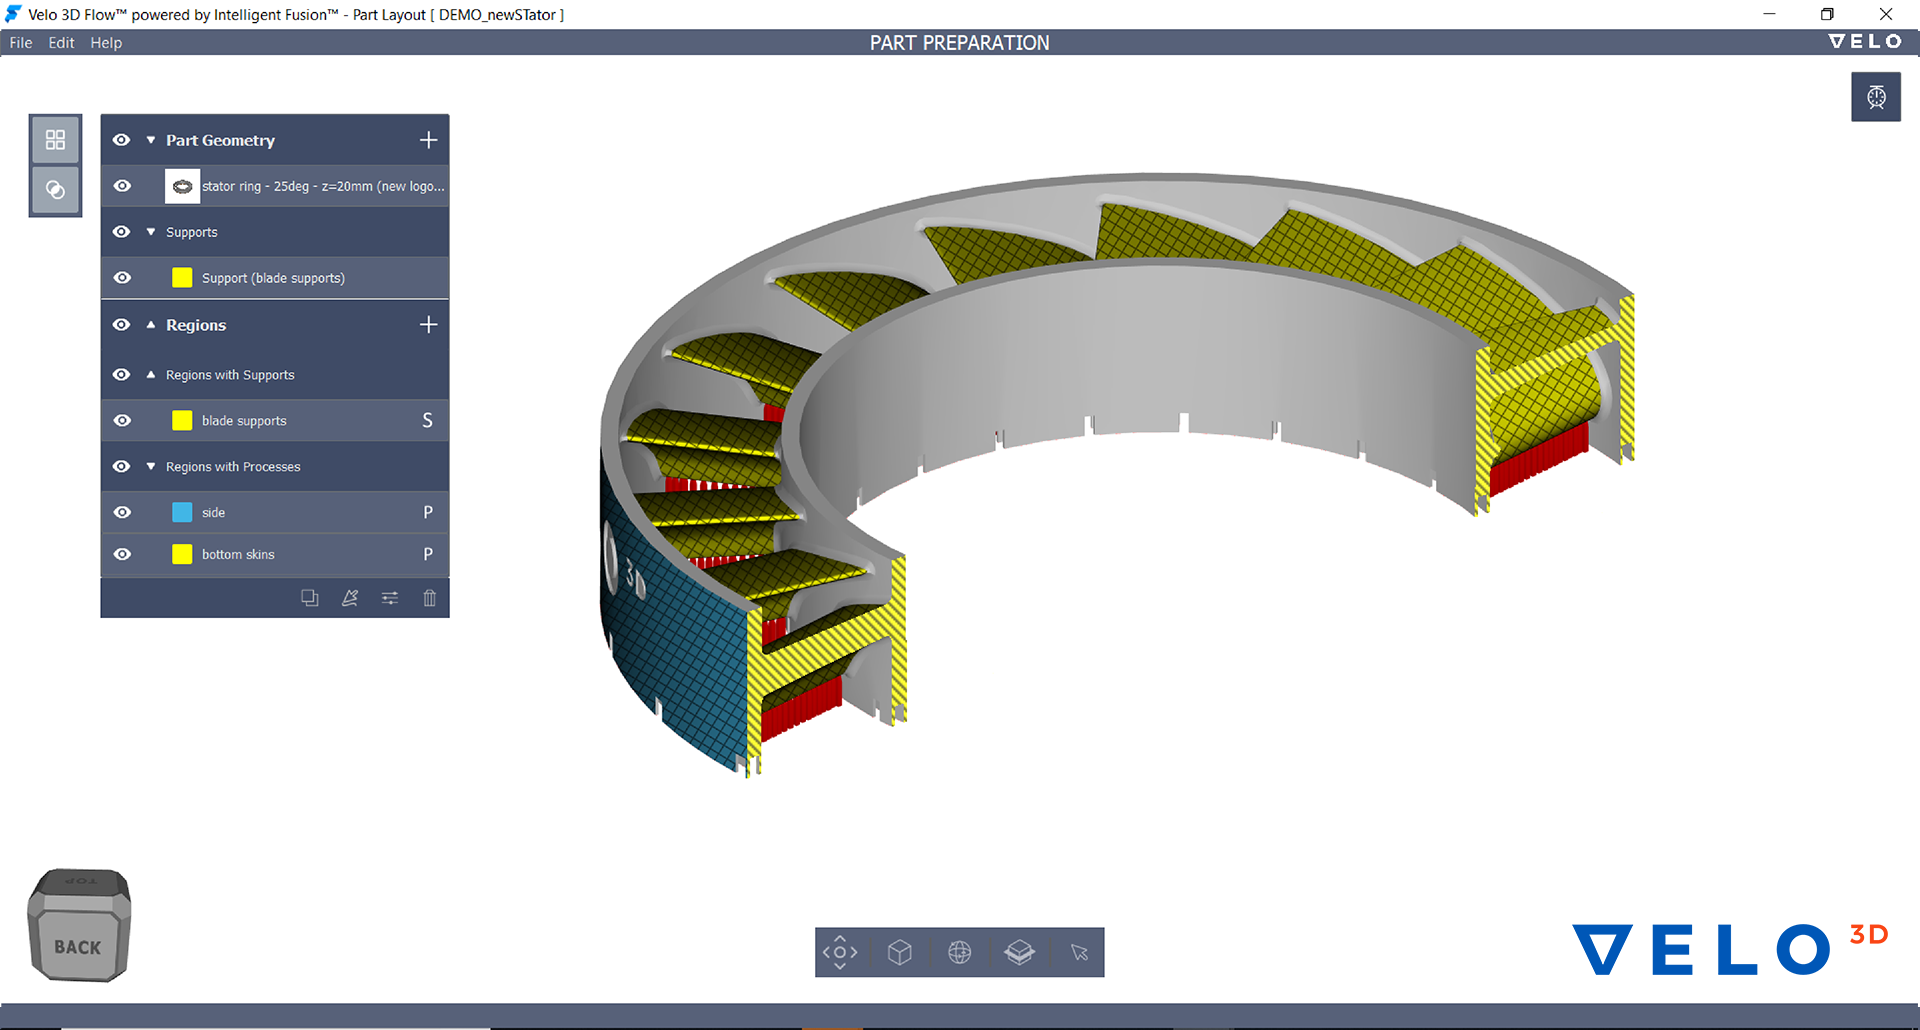 Flow is a simulation driven, process aware print preparation software. Flow ensures predictable print outcomes while reducing print preparation time. Image via VELO3D.